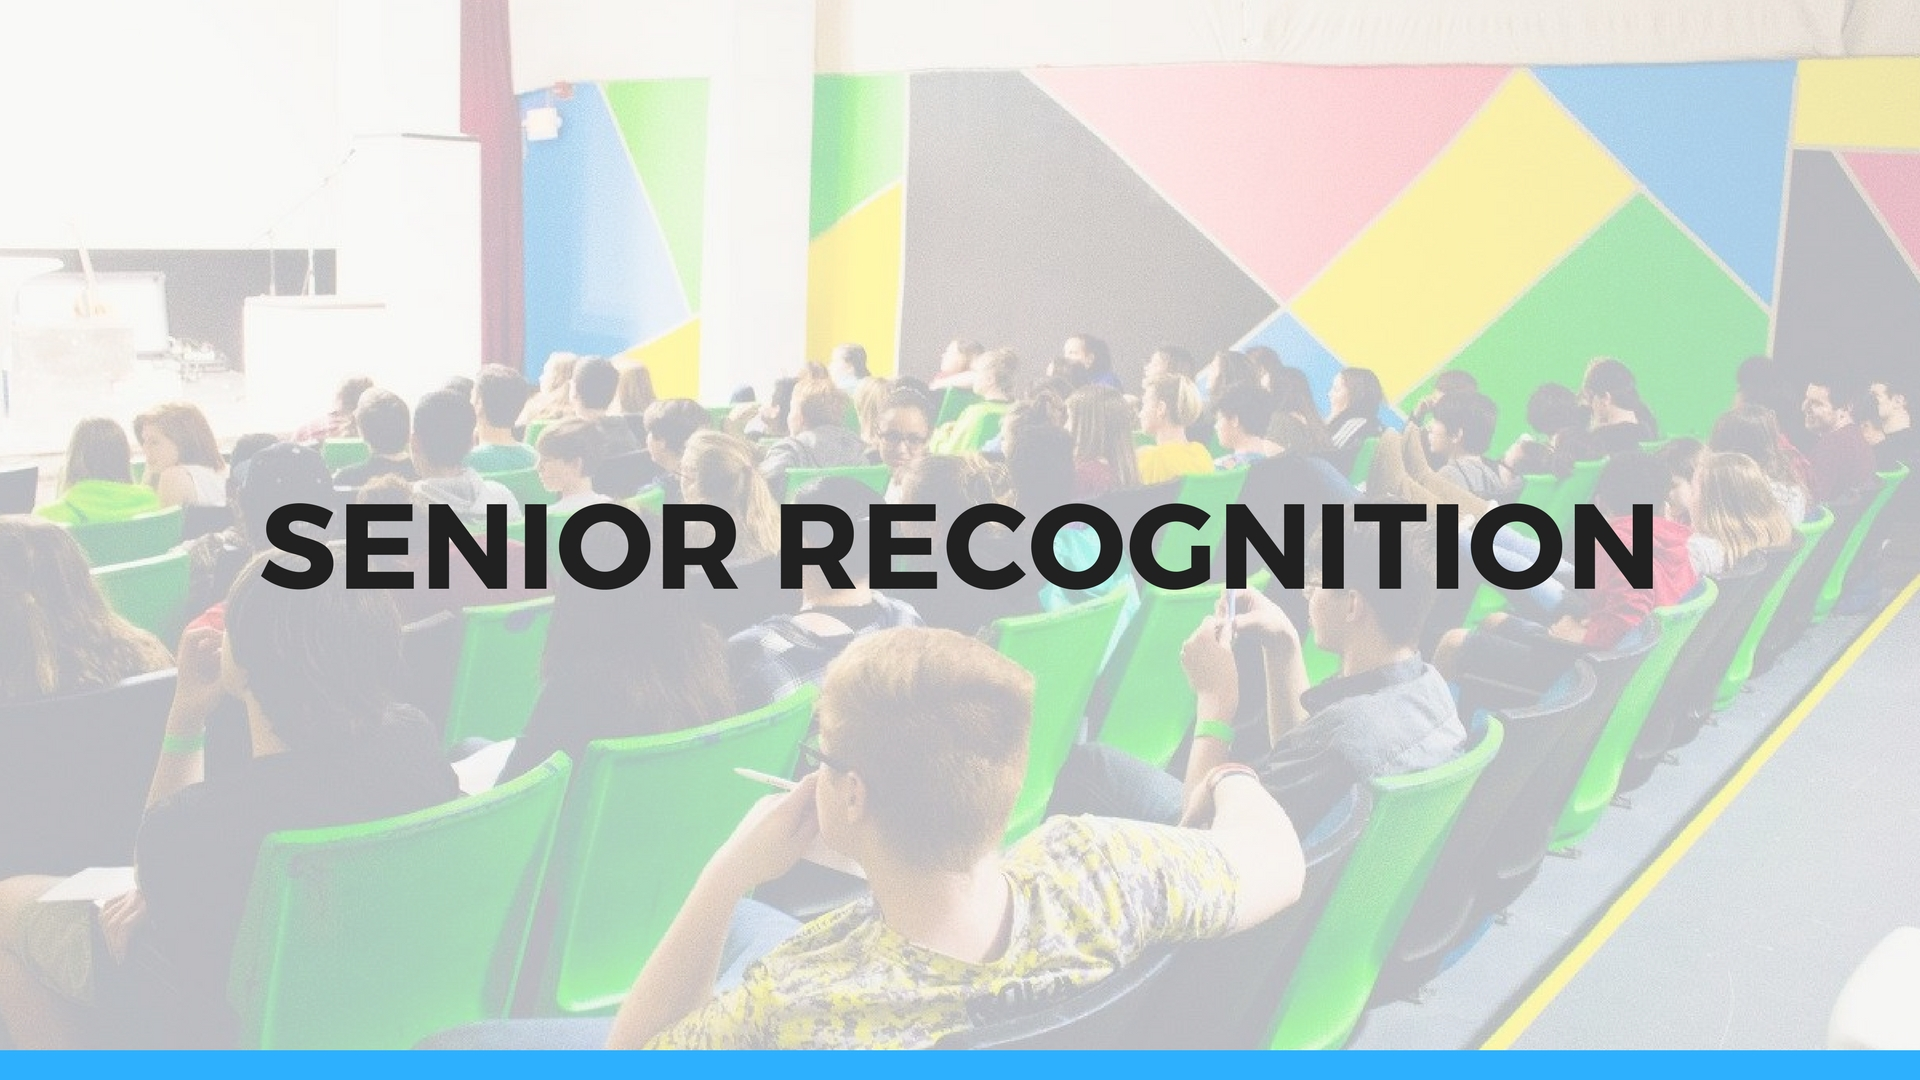 SENIOR RECOGNITION - May 21, 2017     On May 21 we will be holding Senior Recognition. Are you graduating from High School or College. Let us celebrate with you. Sign up below and we will be in contact with you this week to get everything lined out about this awesome day.